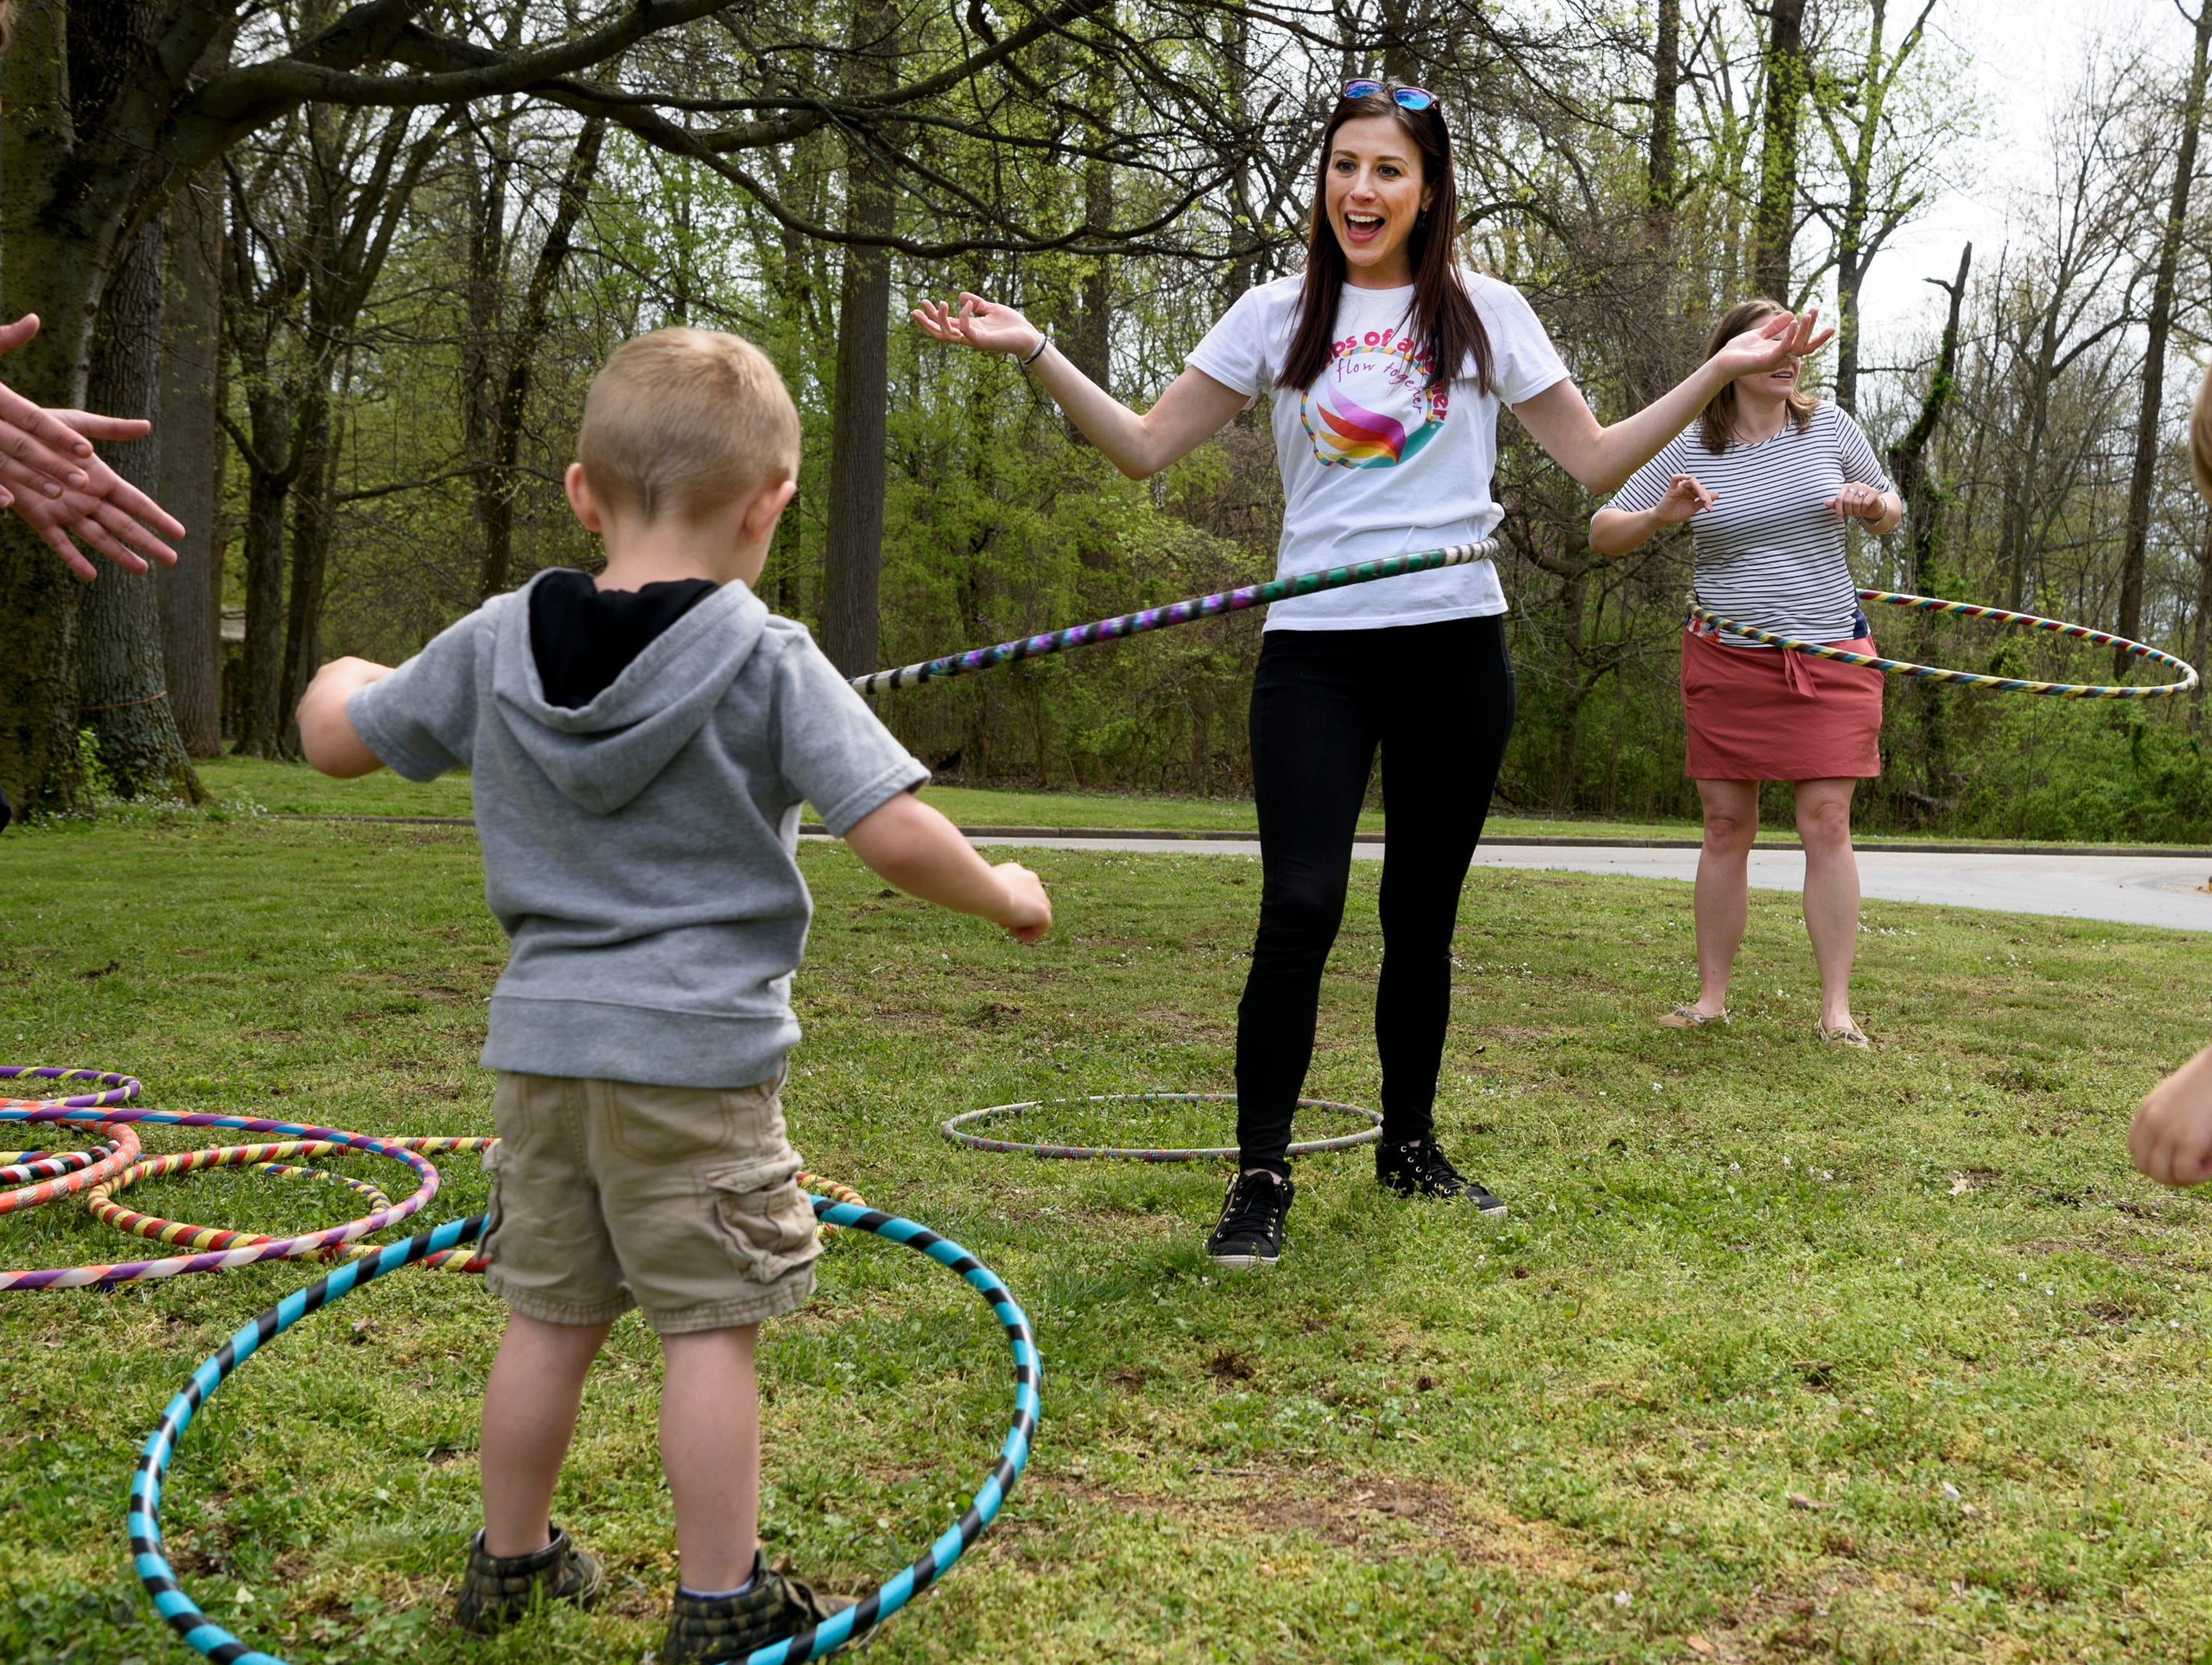 Abbi Killebrew, center, known as Absmarie, shows three-year-old Jeremiah Stewart, left, how to use a hula hoop during the CAPE's annual Family Fun Day at Wesselman Park in Evansville, Ind., Friday, April 12, 2019.